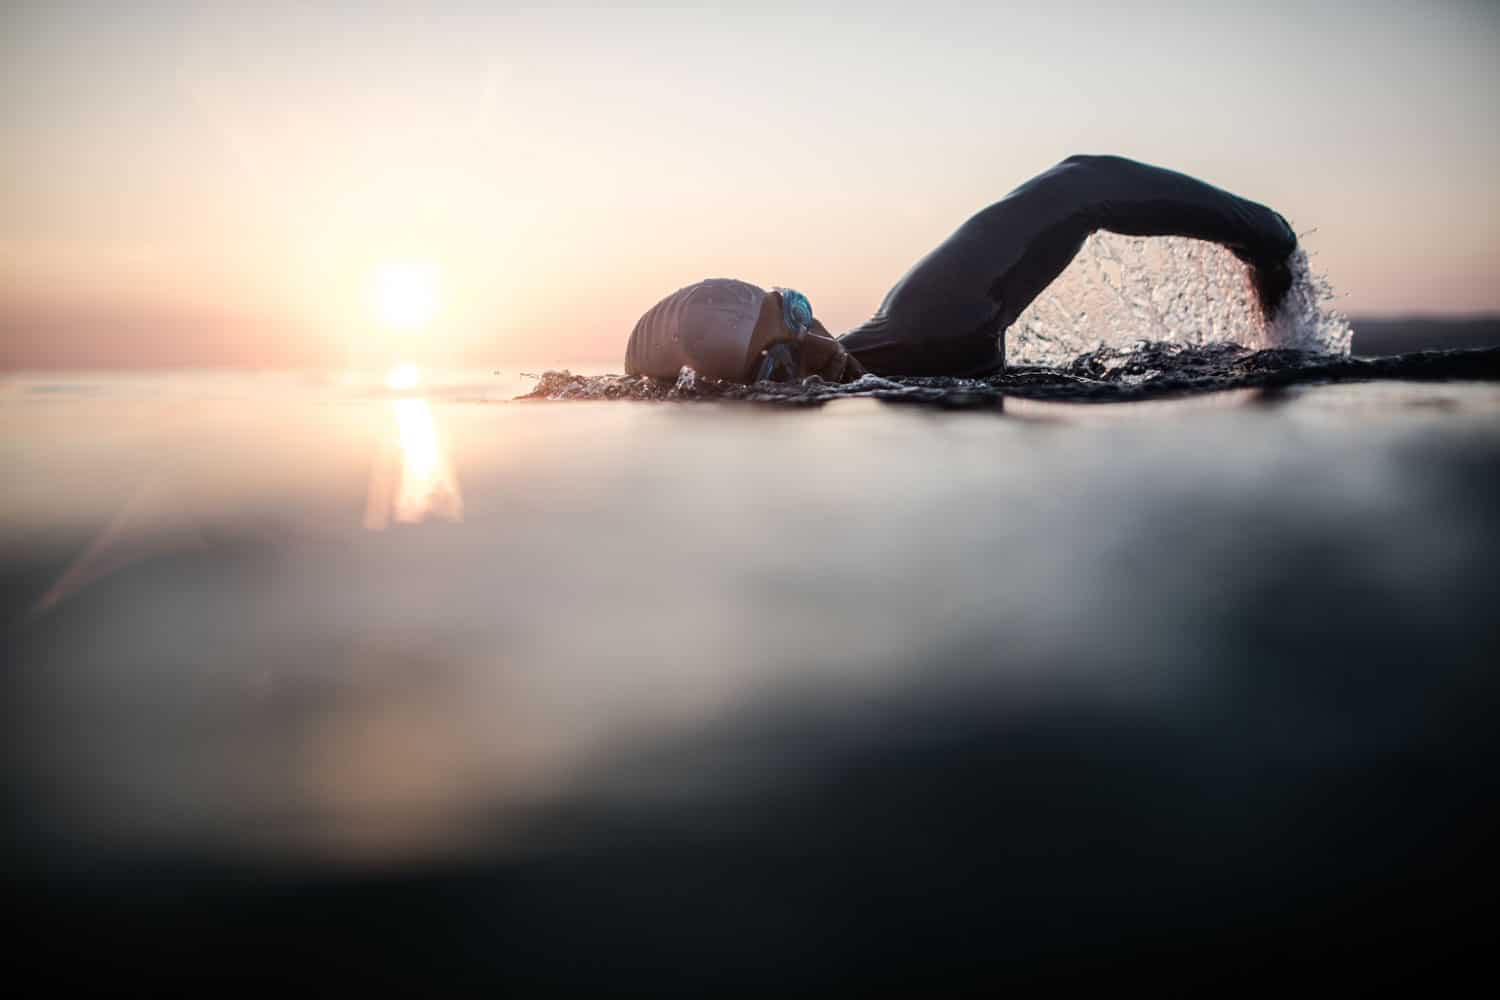 A detailed photo of a man swimming on open waters competing on an Ironman triathlon competition